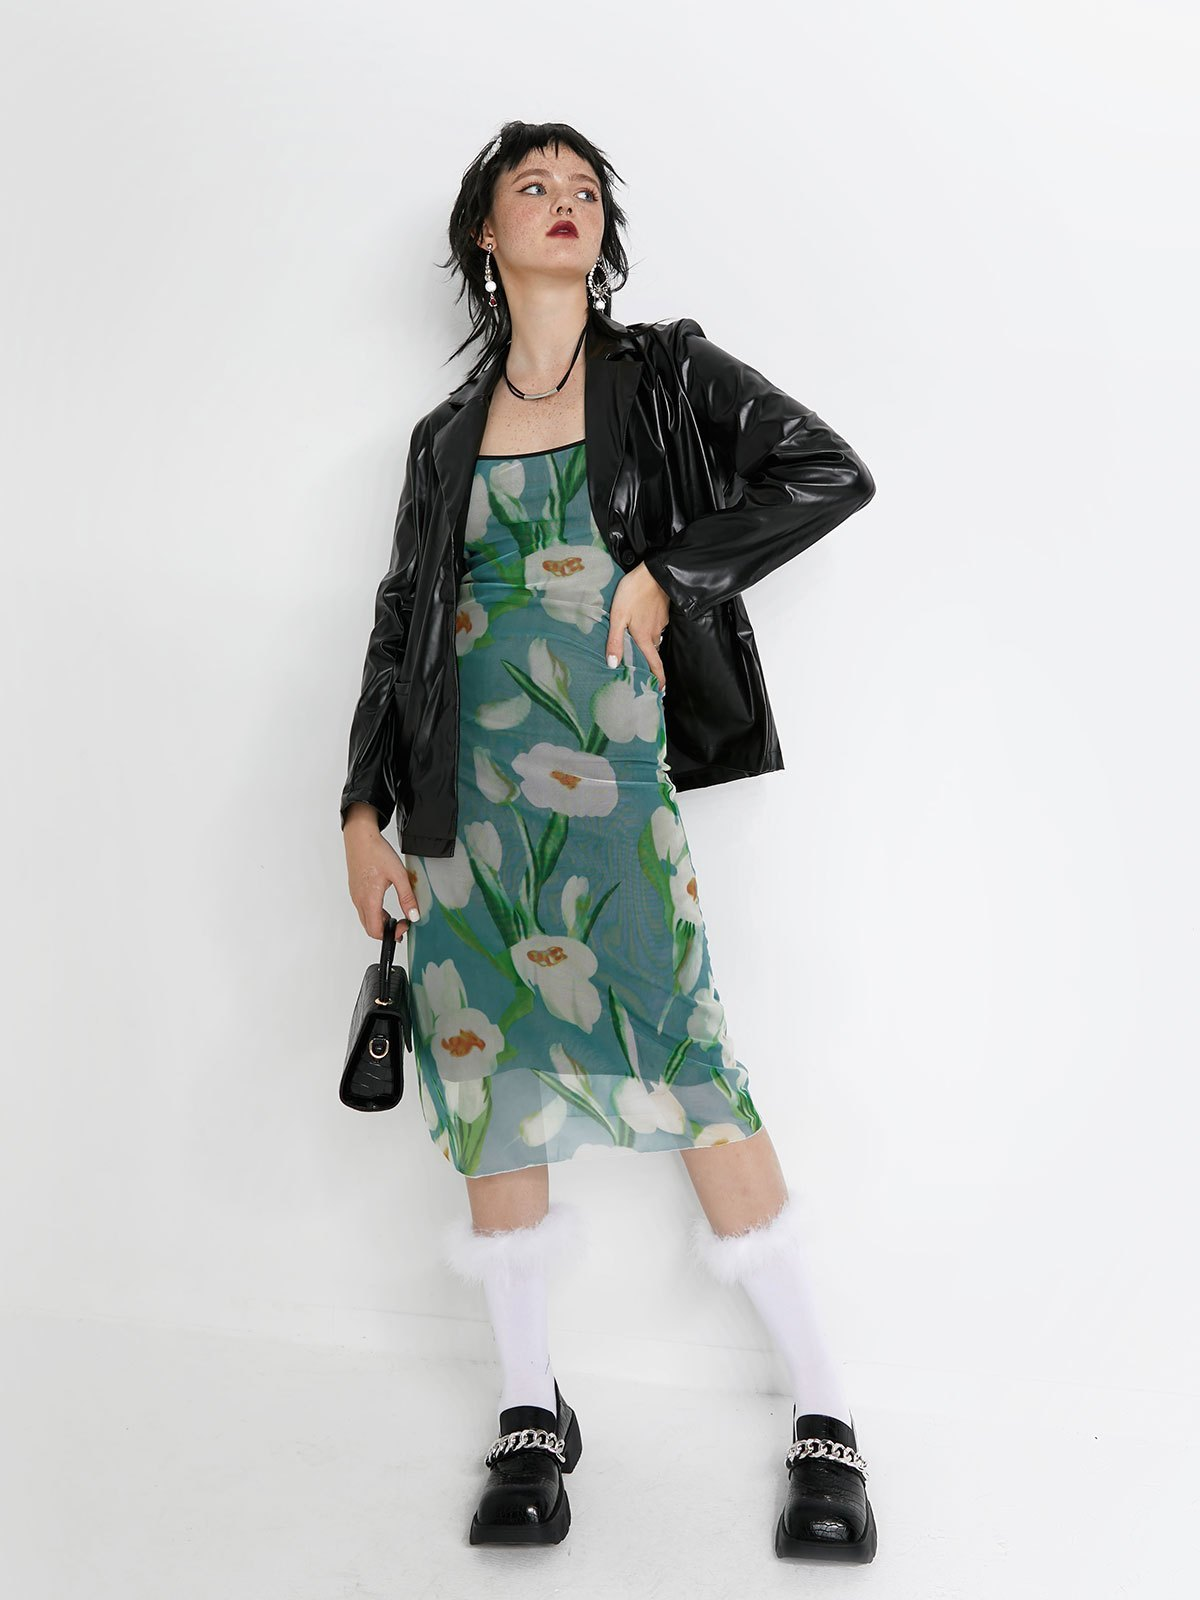 Mesh Smudged Floral Sling Midi Dress - As The Picture S